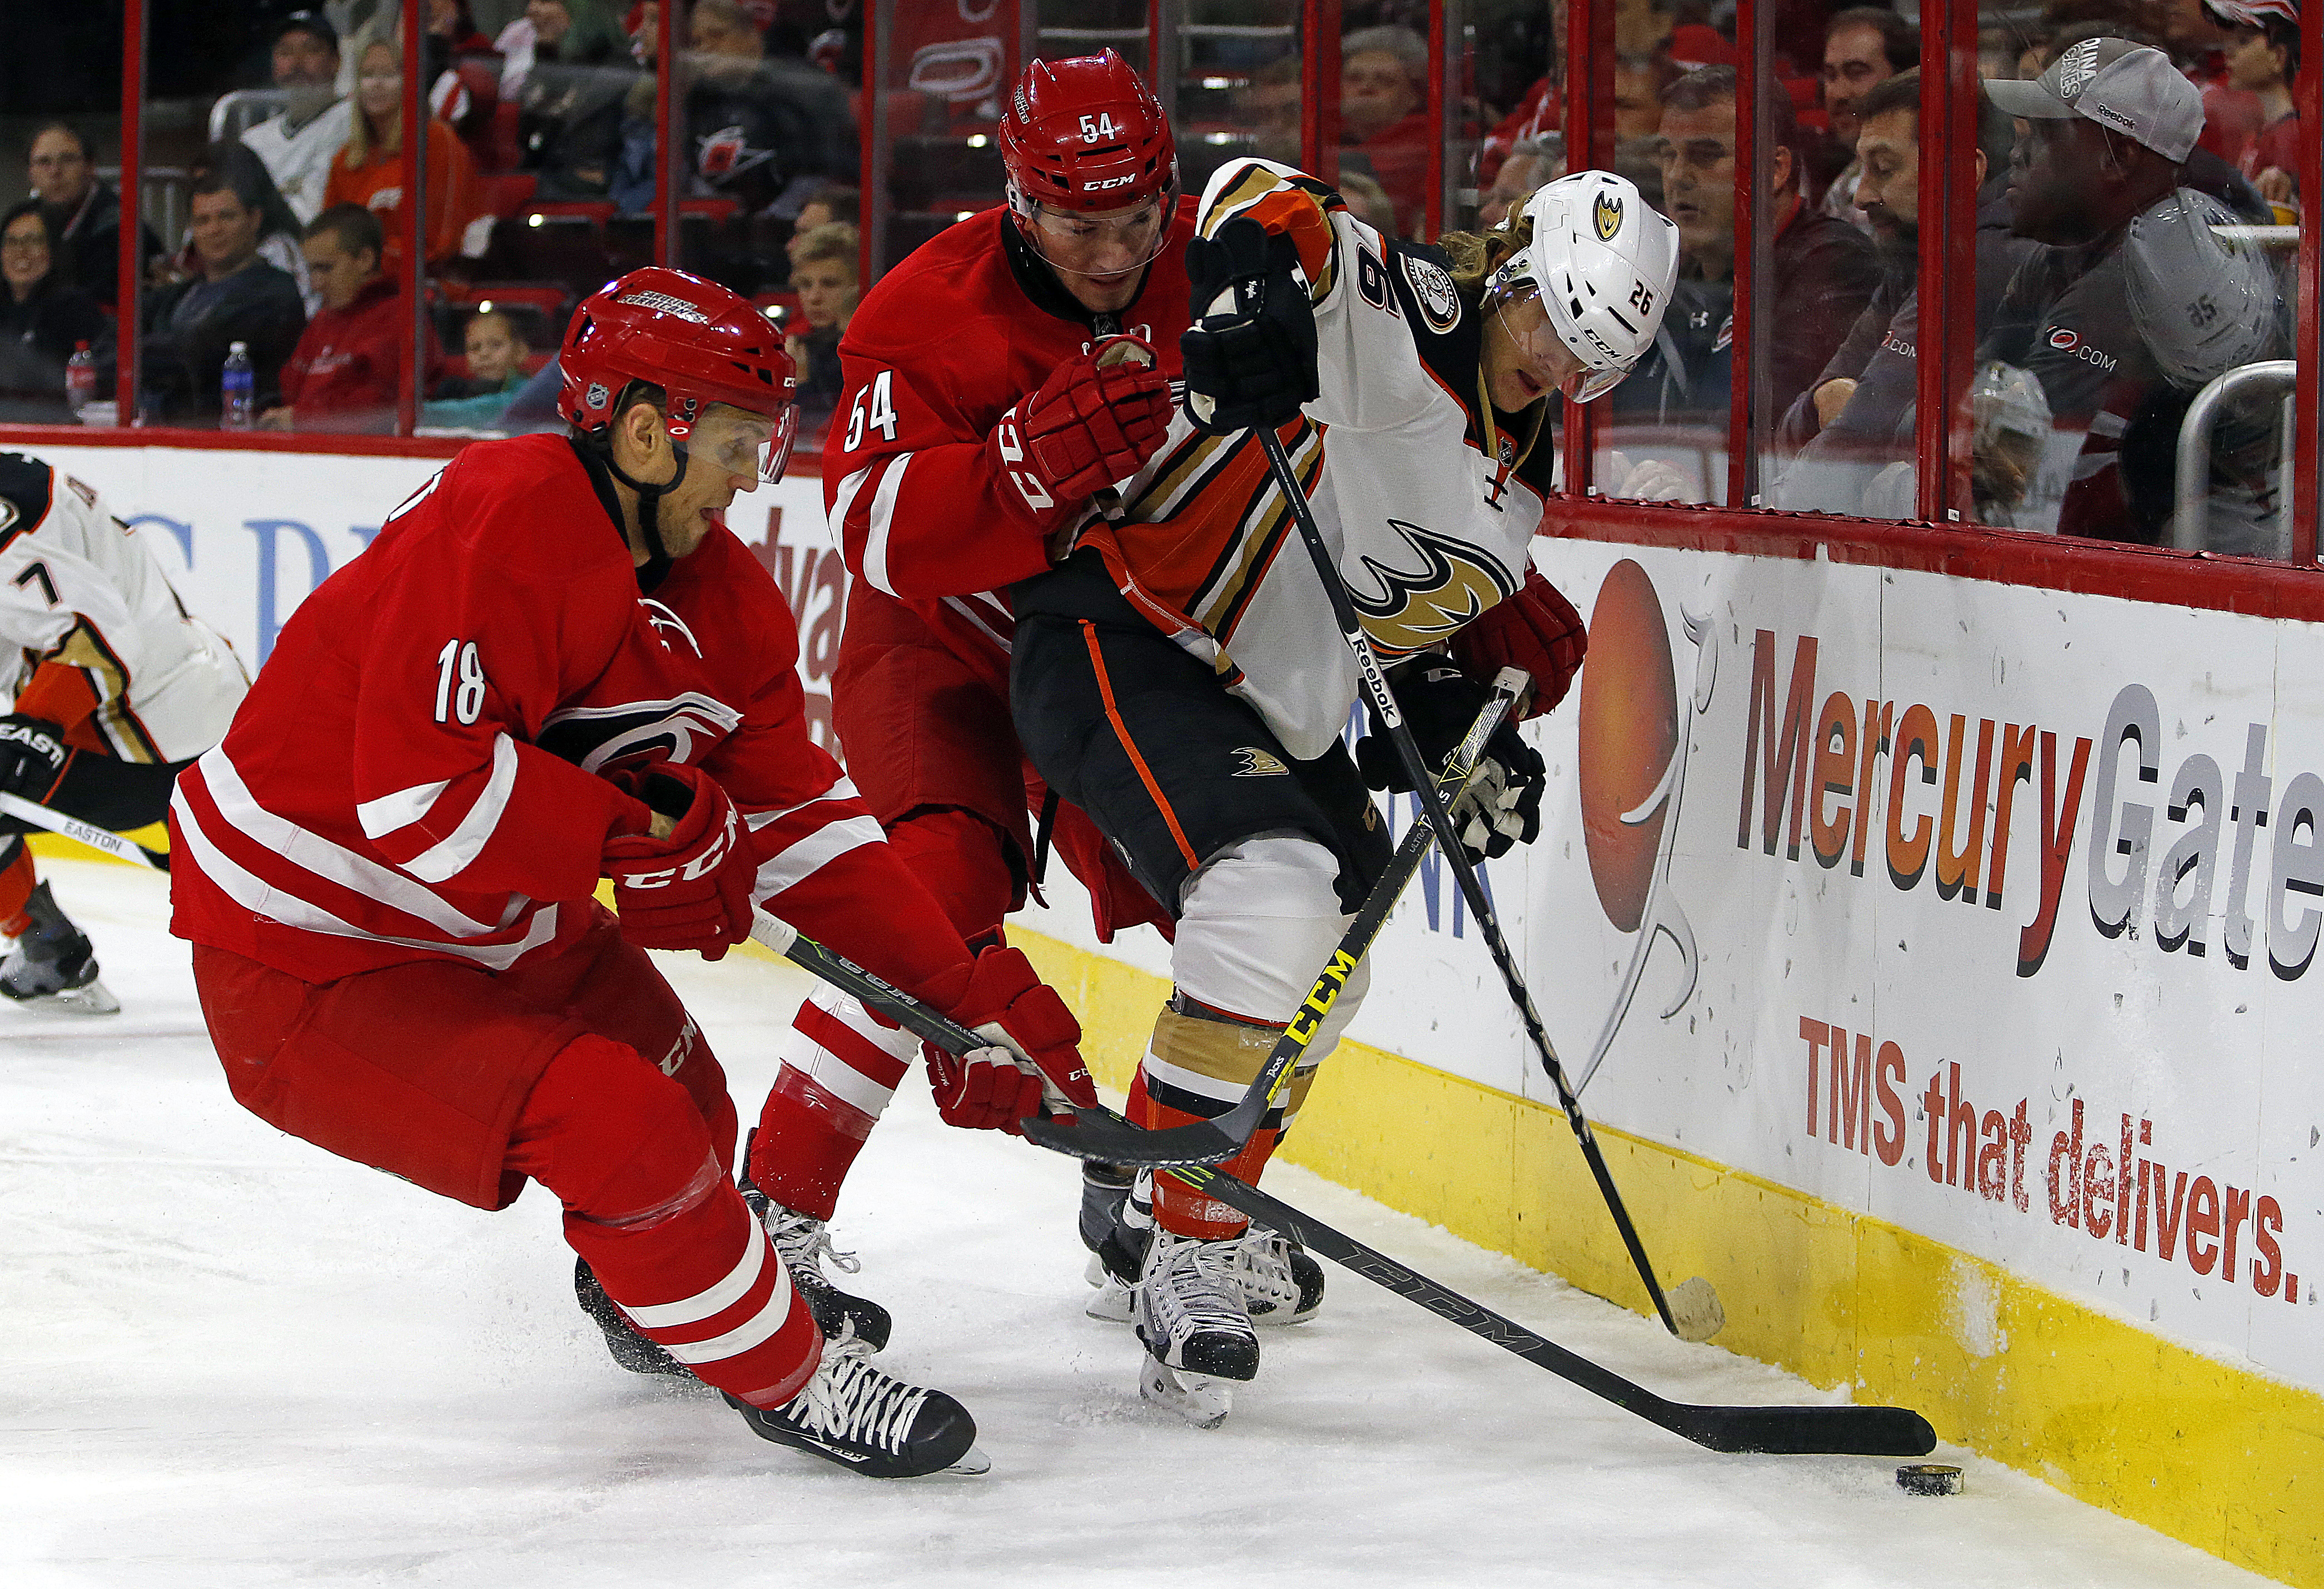 Carolina Hurricanes' Jay McClement (18) reaches for the puck as teammate Brett Pesce (54) ties up Anaheim Ducks' Carl Hagelin (26) during the first period of an NHL hockey game, Monday, Nov. 16, 2015, in Raleigh, N.C. (AP Photo/Karl B DeBlaker)